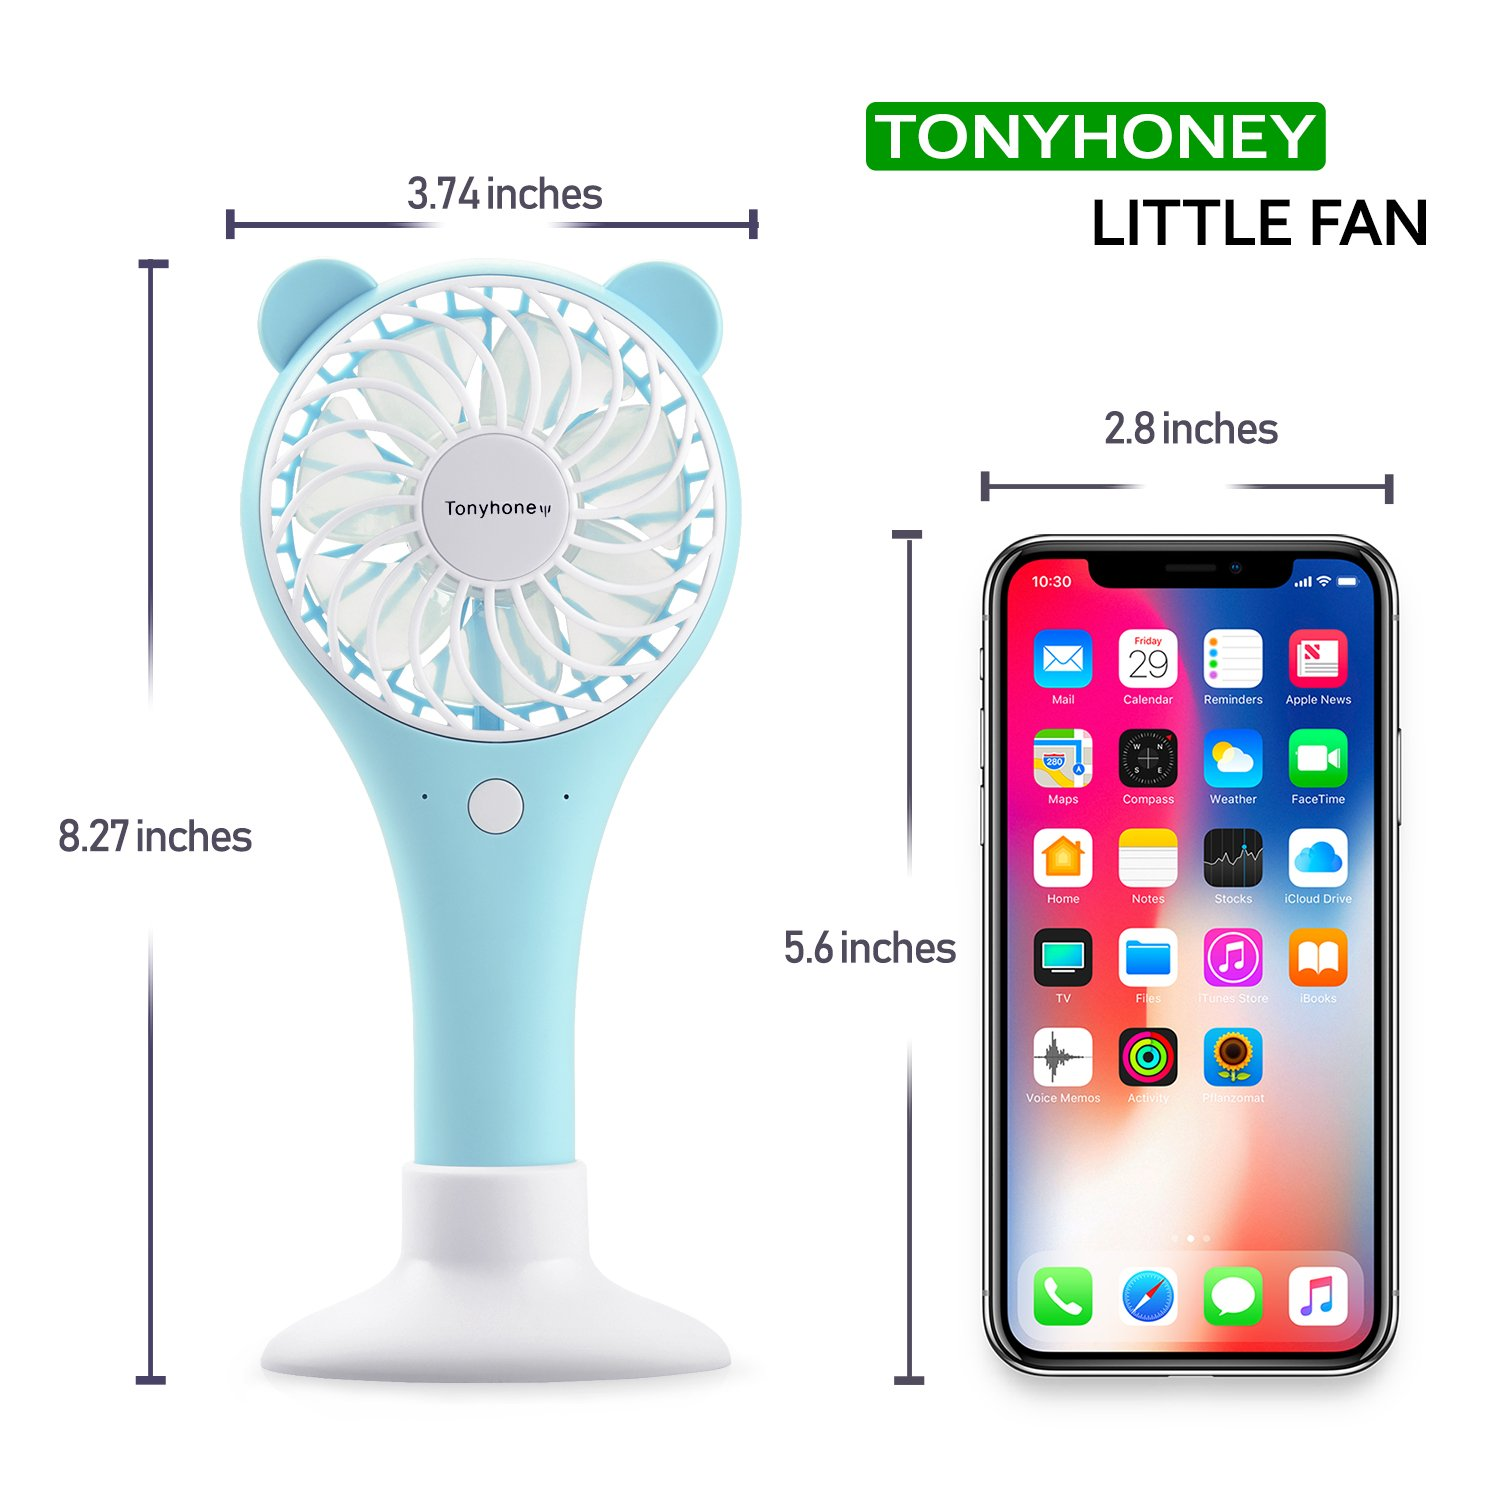 2000mAh Battery 2 Modes for Home Office Travel Outdoor Blue Tonyhoney Mini Handheld Portable Fan Hand Held Personal Fan Rechargeable Battery Operated Powered Cooling Desktop Electric Fan